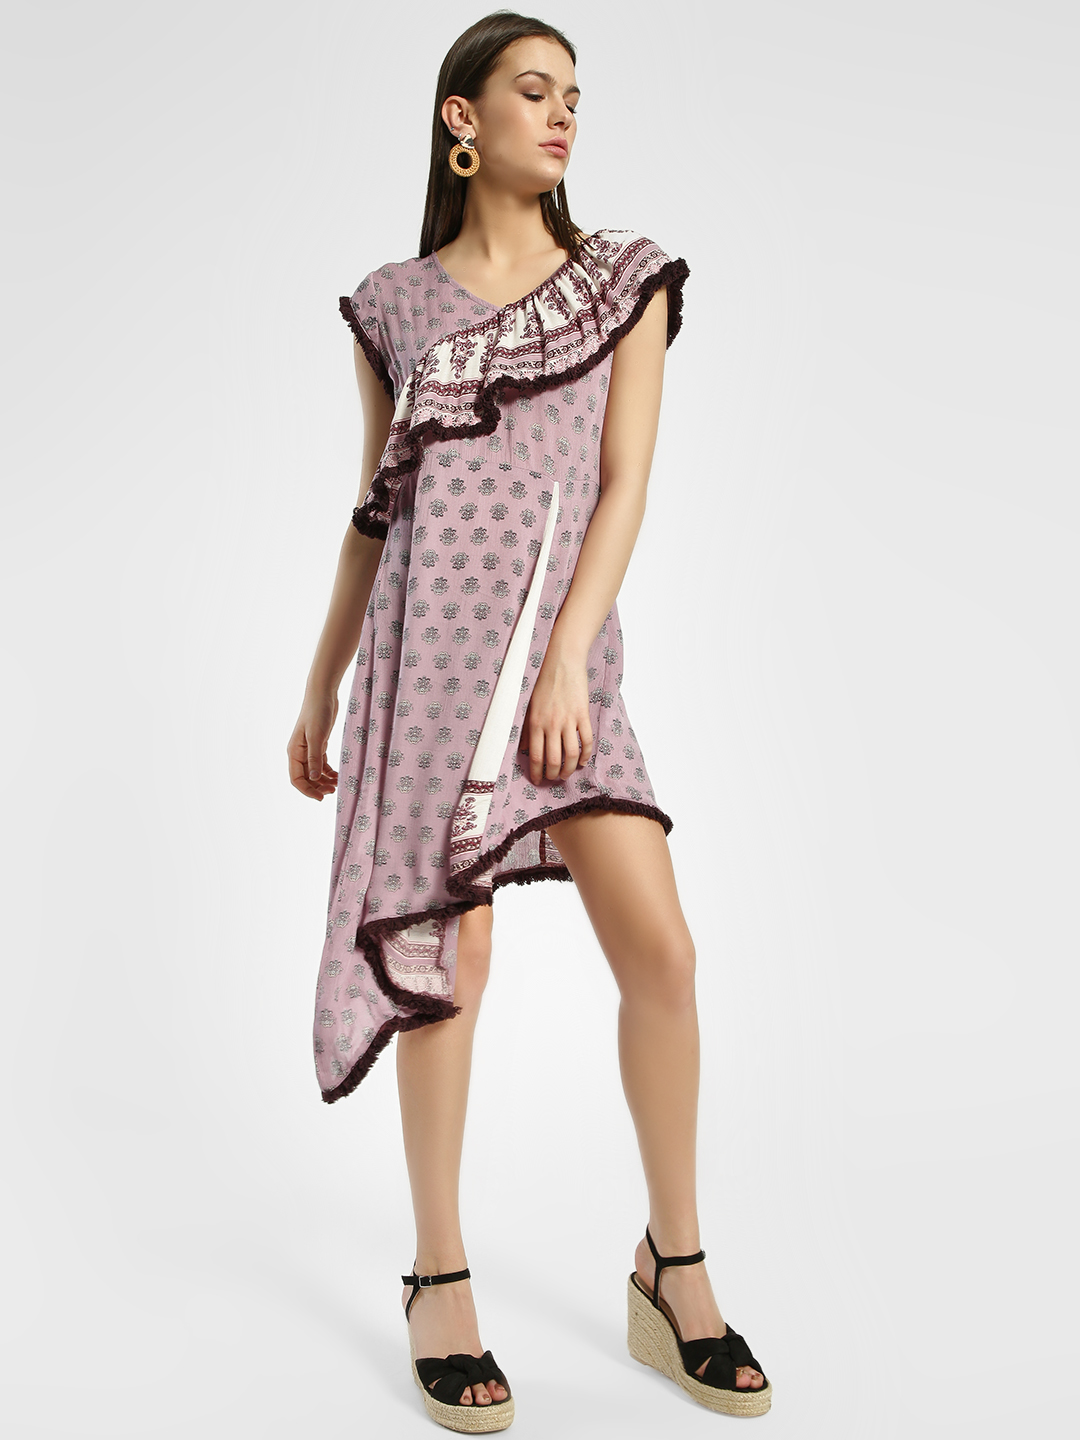 Rena Love Multi Paisley Print Asymmetric Dress 1